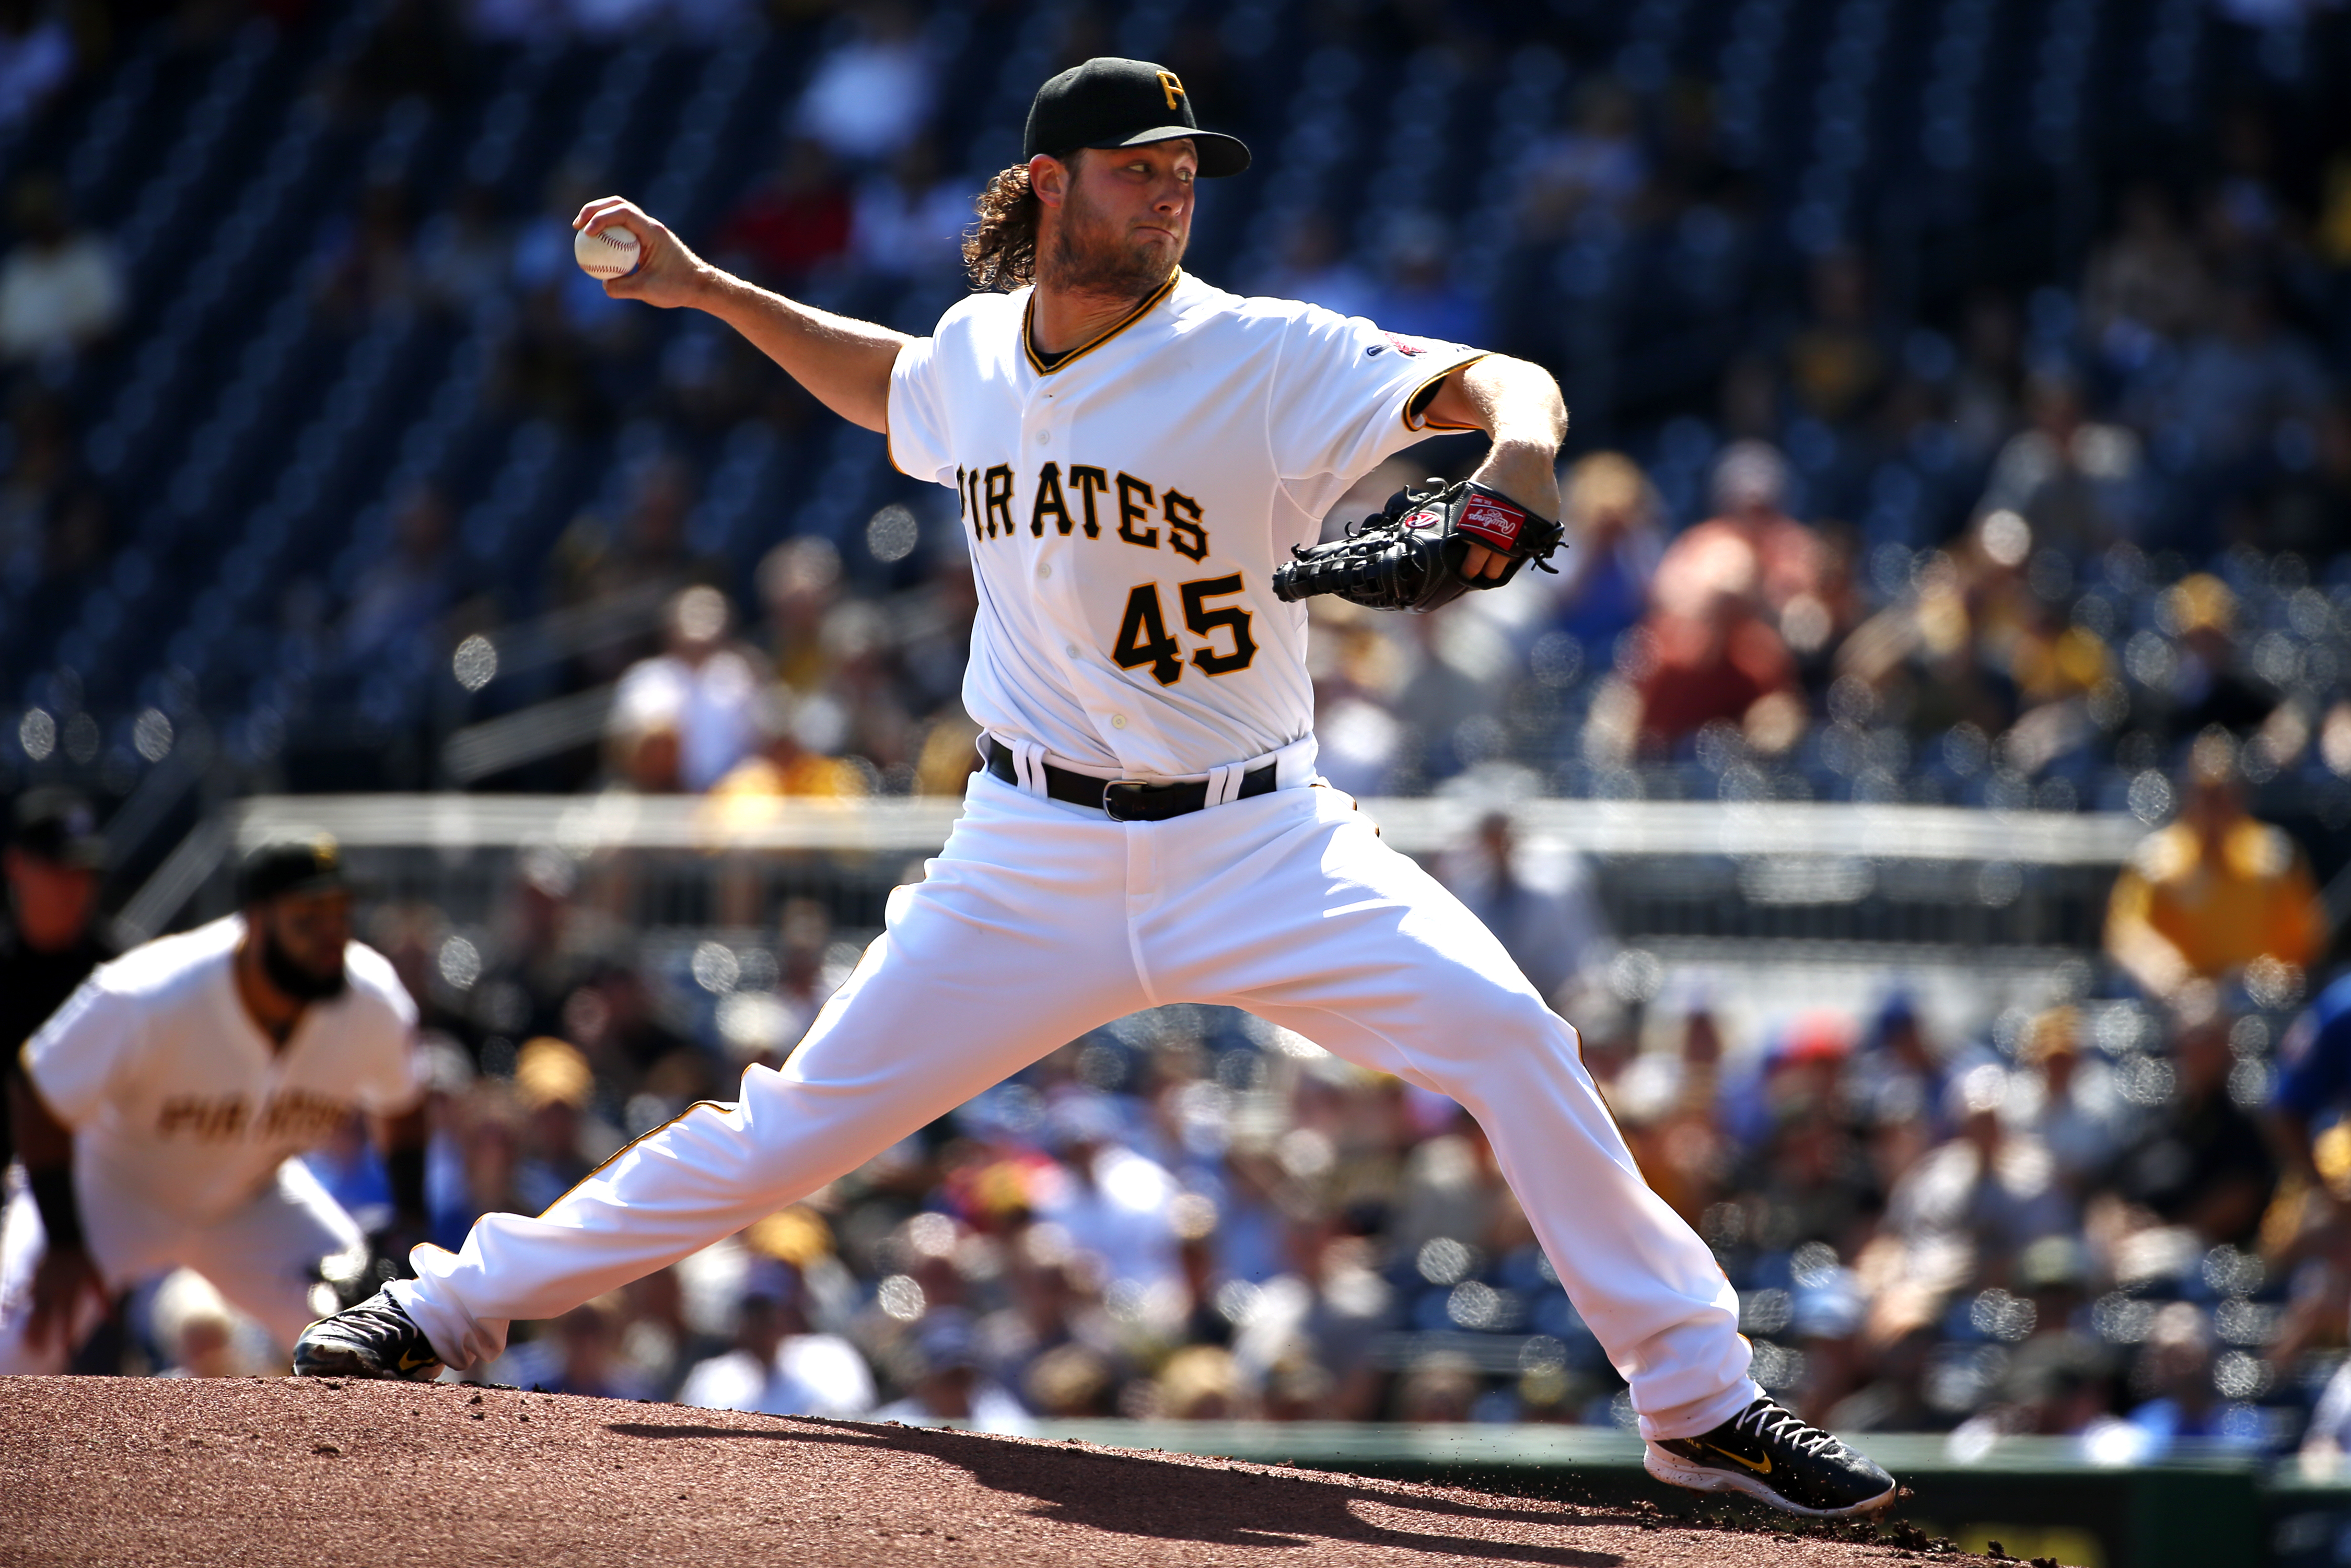 Pittsburgh Pirates starting pitcher Gerrit Cole delivers during the first inning of the first baseball game of a doubleheader against the Chicago Cubs, Tuesday, Sept. 15, 2015, in Pittsburgh. (AP Photo/Gene J. Puskar)